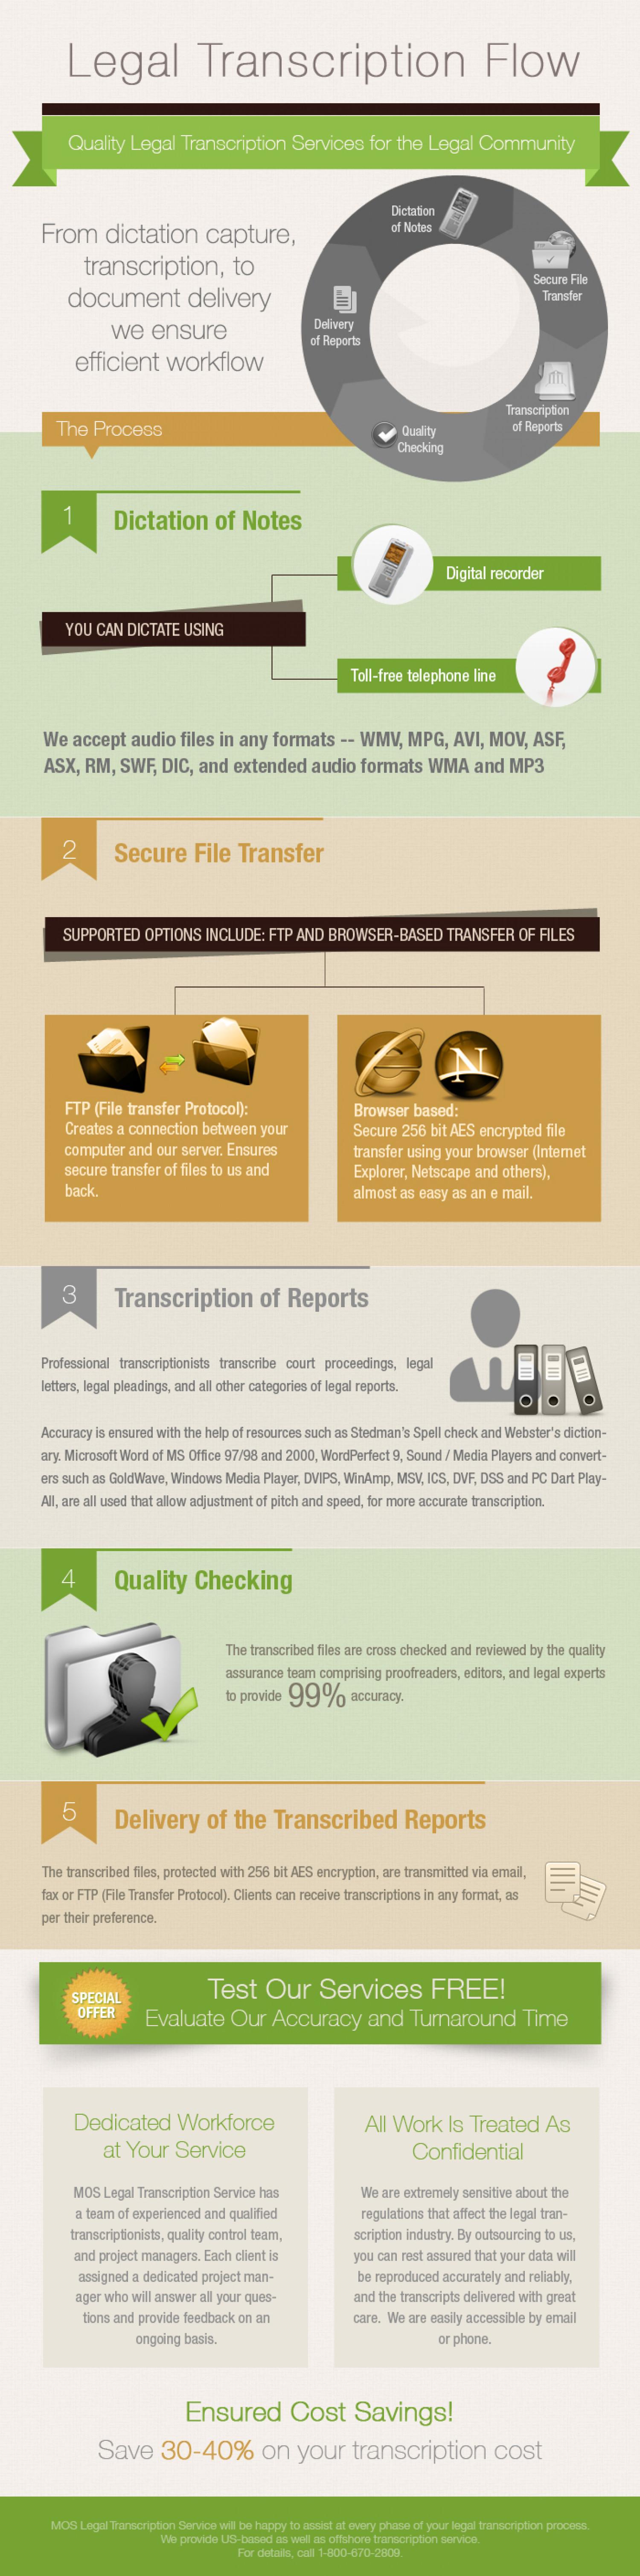 Legal Transcription Flow Infographic